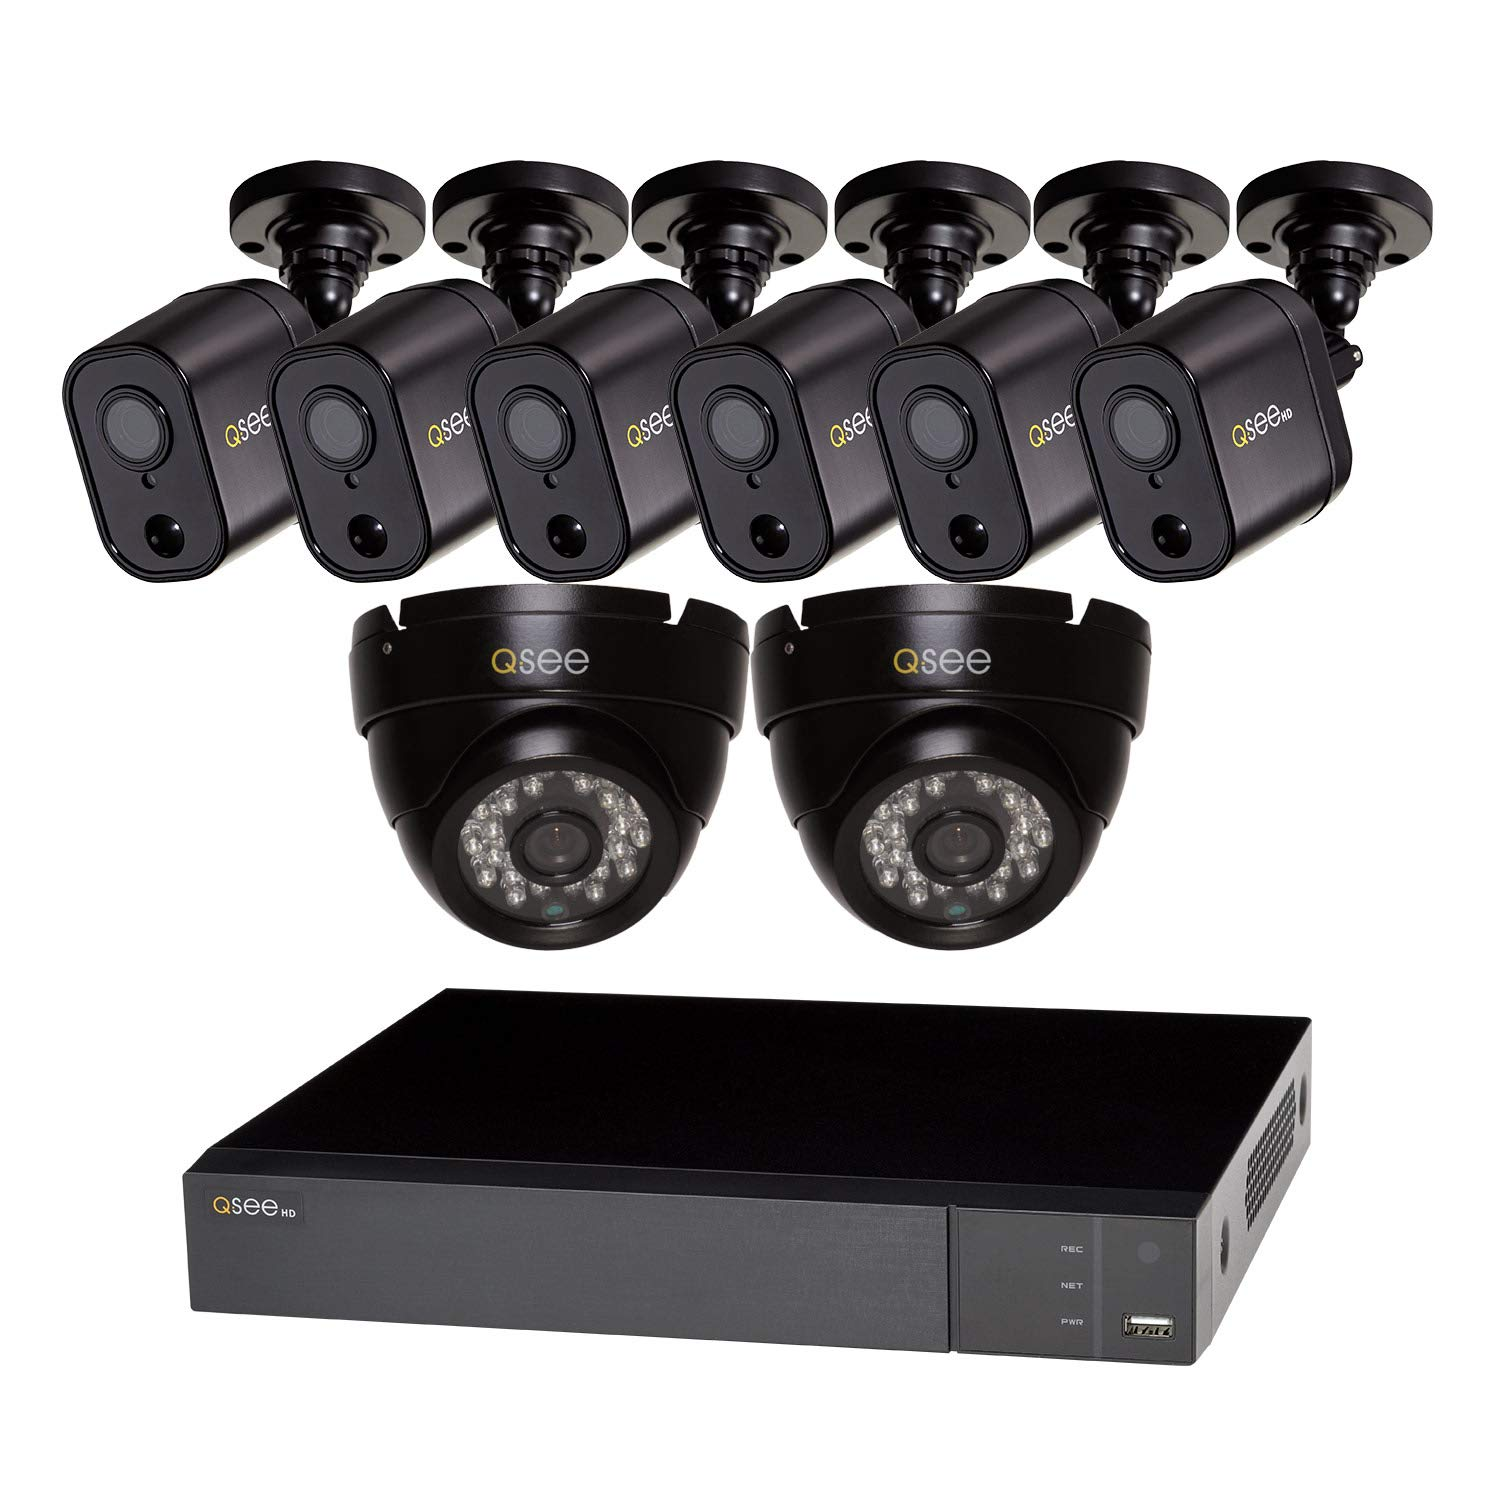 1080P HD PIR Bullet Cameras, Night Vision Indoor//Outdoor 2 Q-See Home Security System BNC 4 App 8-Channel 1080p PIR Analog HD DVR with 720P Dome Cameras and 1TB HDD